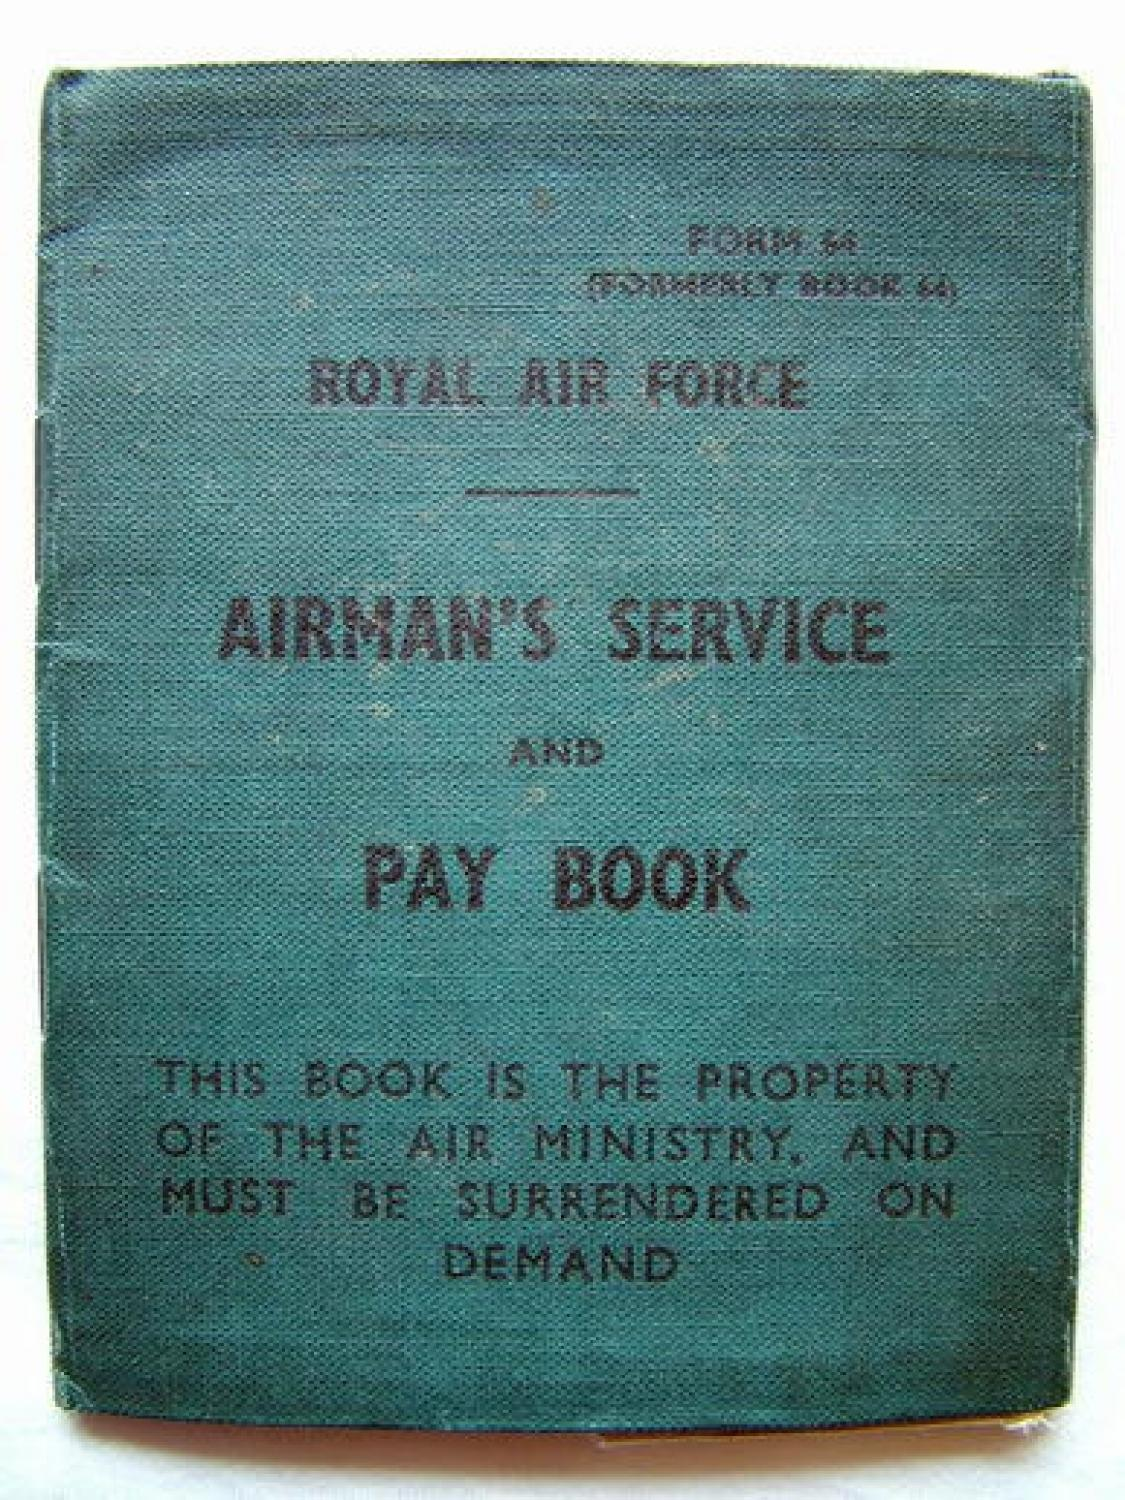 RAF Airman's Service and Pay Book